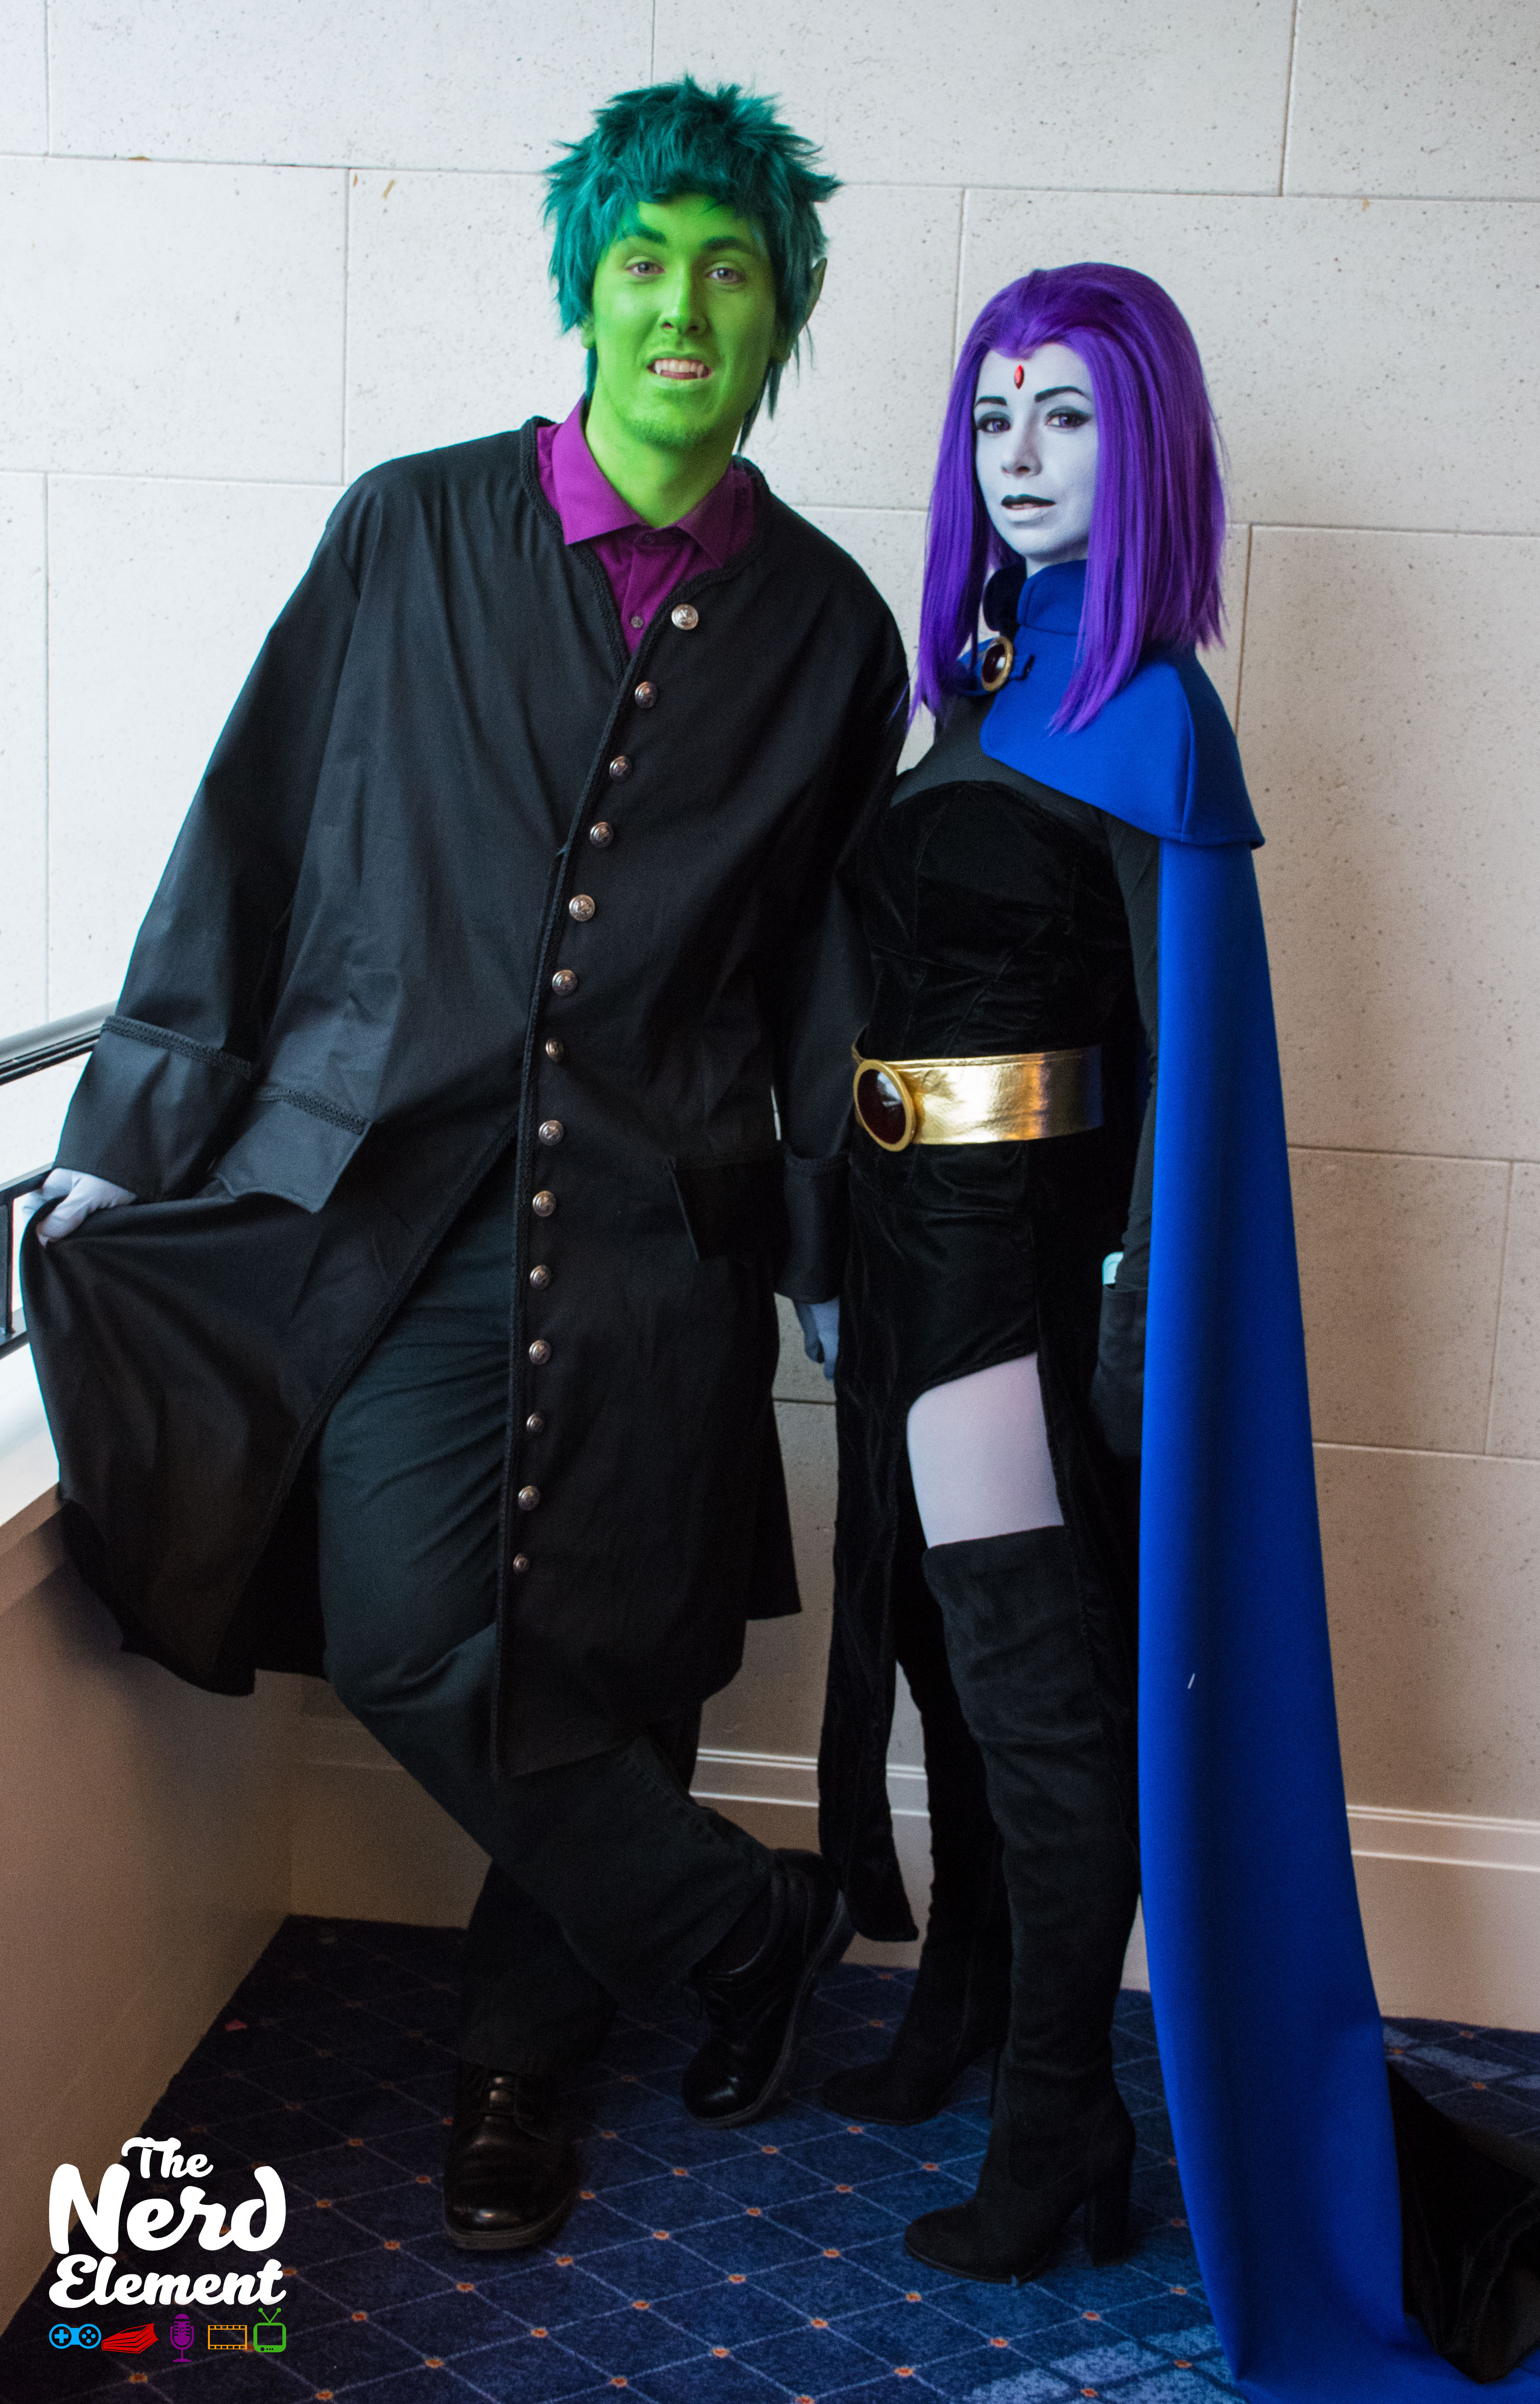 Beast Boy and Raven - Teen Titans Cosplayers: @jakedawolfman123 and @focsee